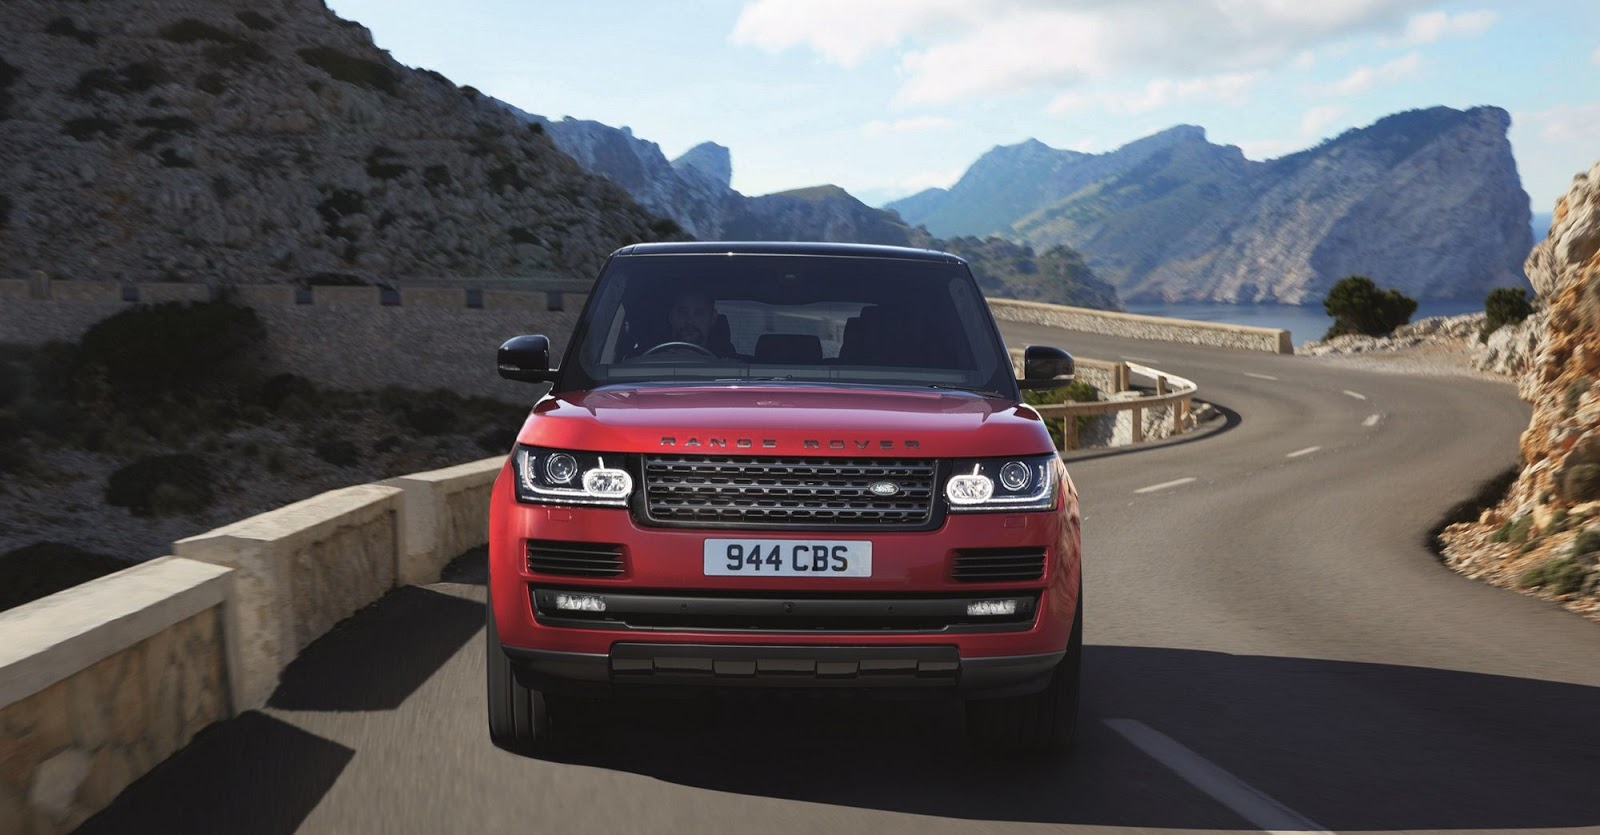 2017 range rover gets with new tech and svautobiography dynamic variant